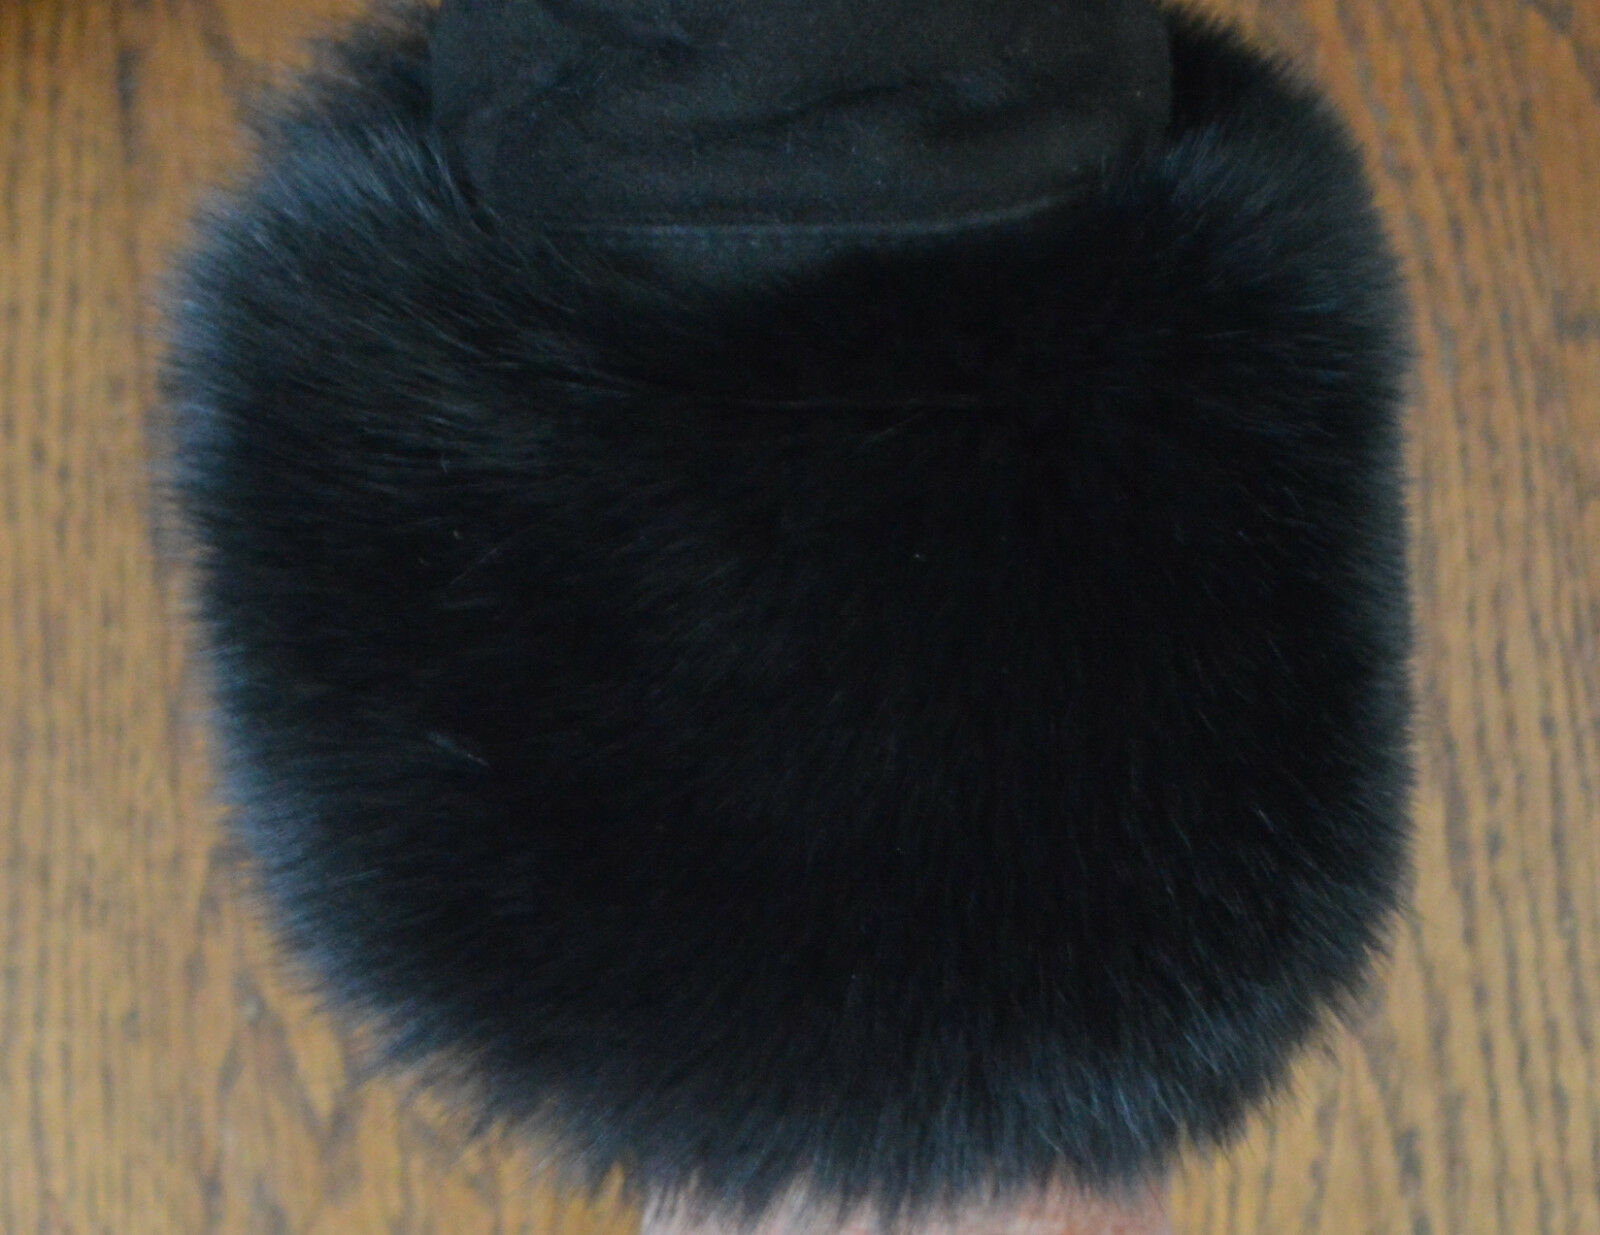 afc14abfaea Real Black Fox Fur Cuffs New (made in the U.S.A.) • $89.99